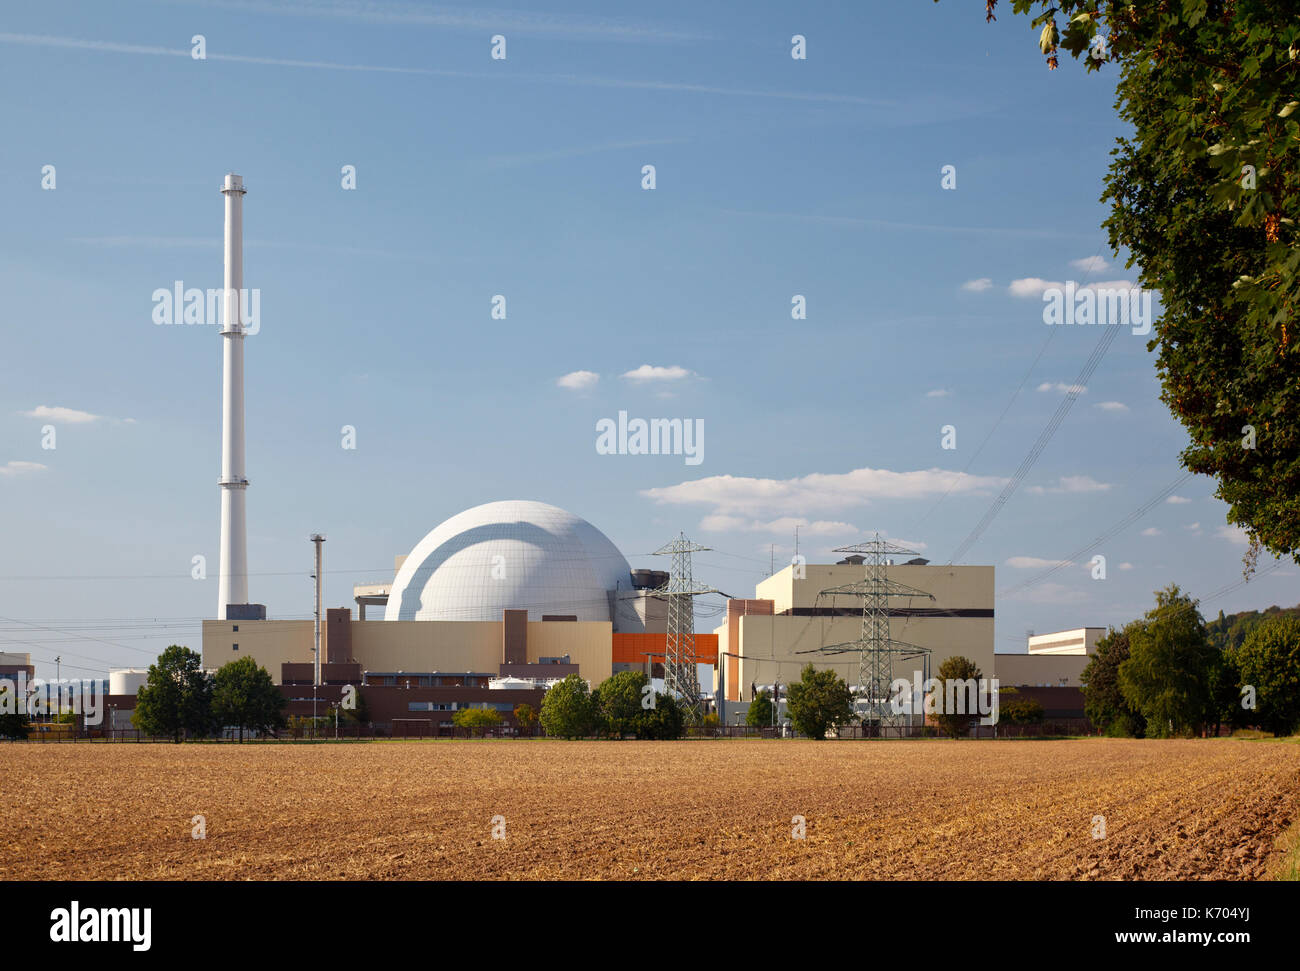 Reactor part of a nuclear power plant in sunlight. - Stock Image